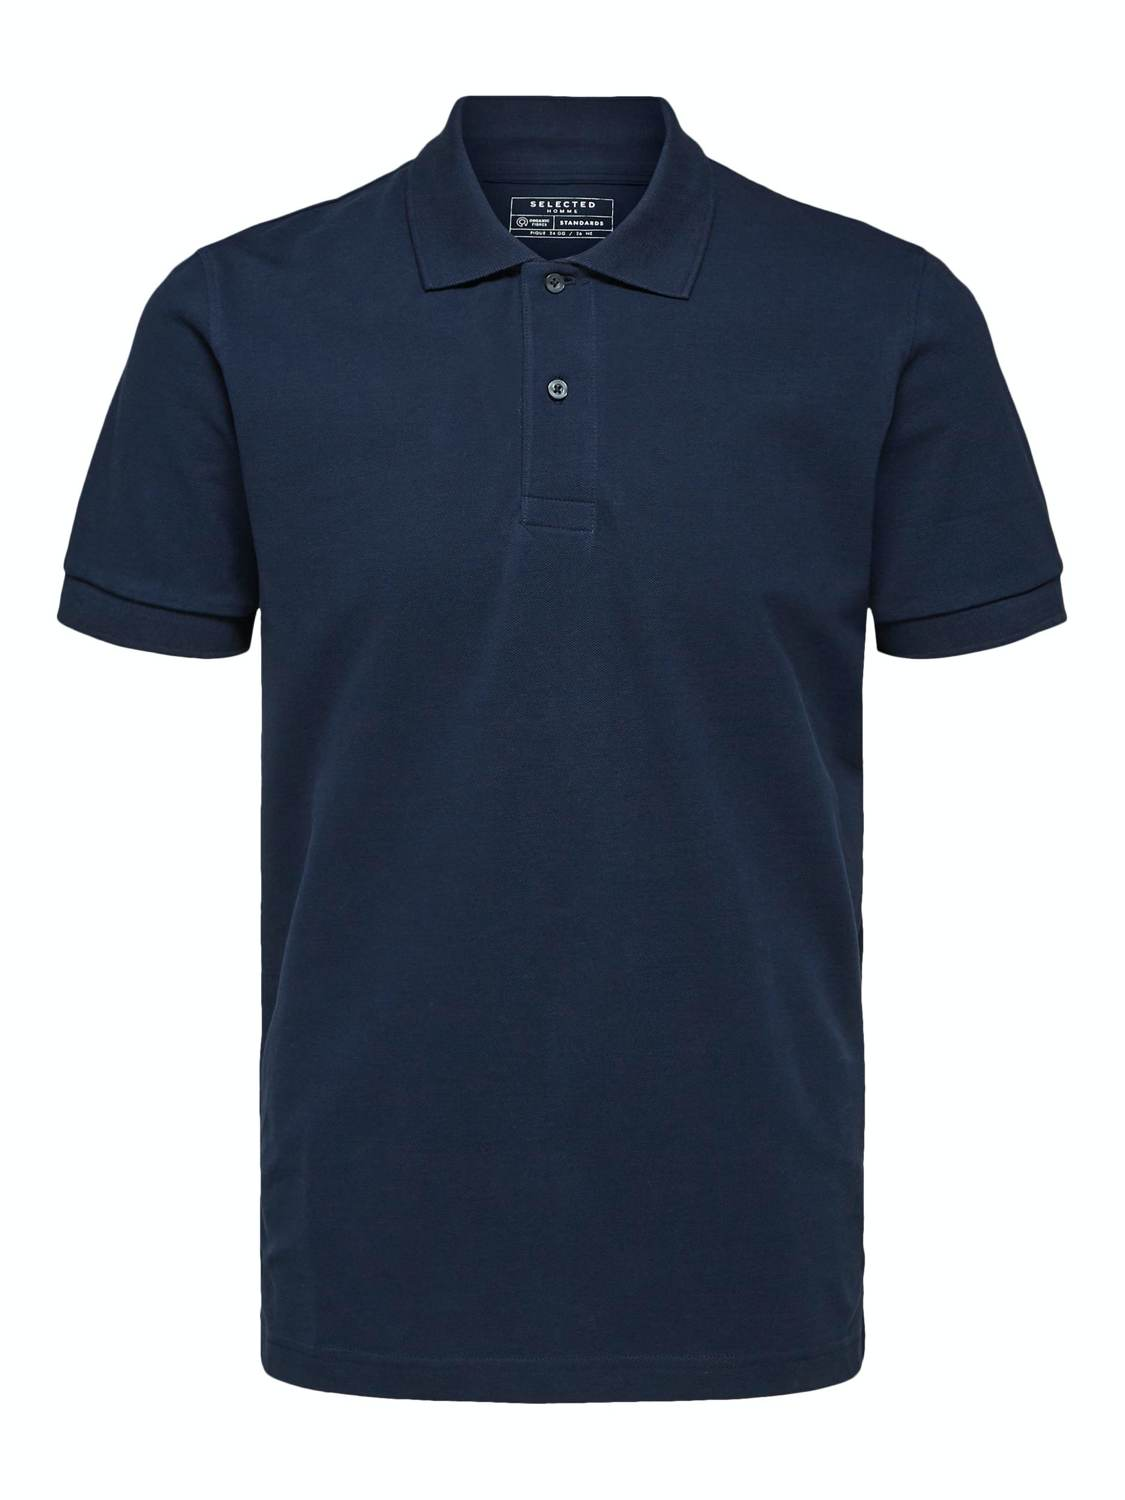 SELECTED POLO T-SHIRT SLHNEO NAVY | GATE 36 Hobro